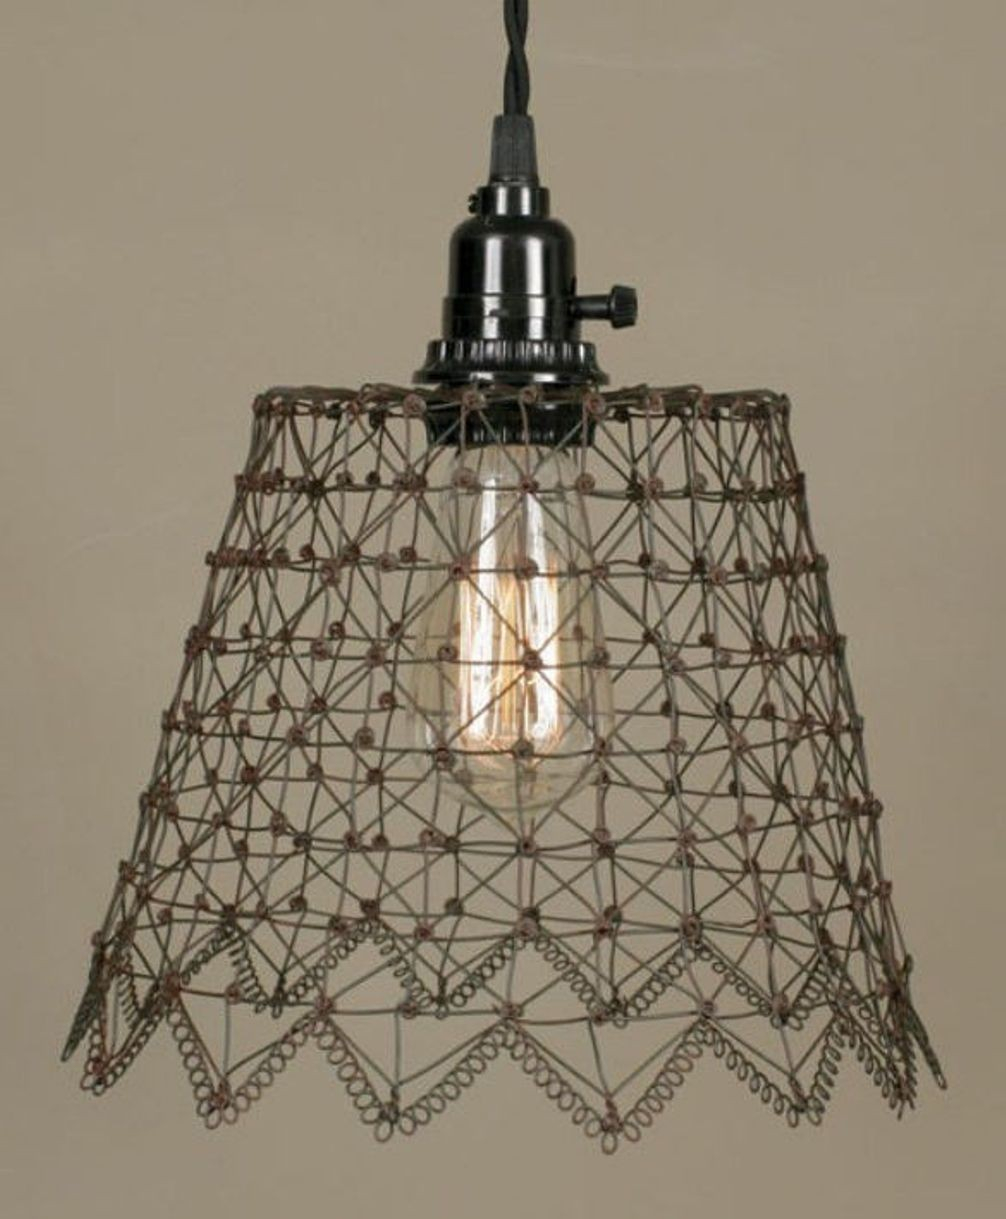 Chicken Wire Chandeliers Ical